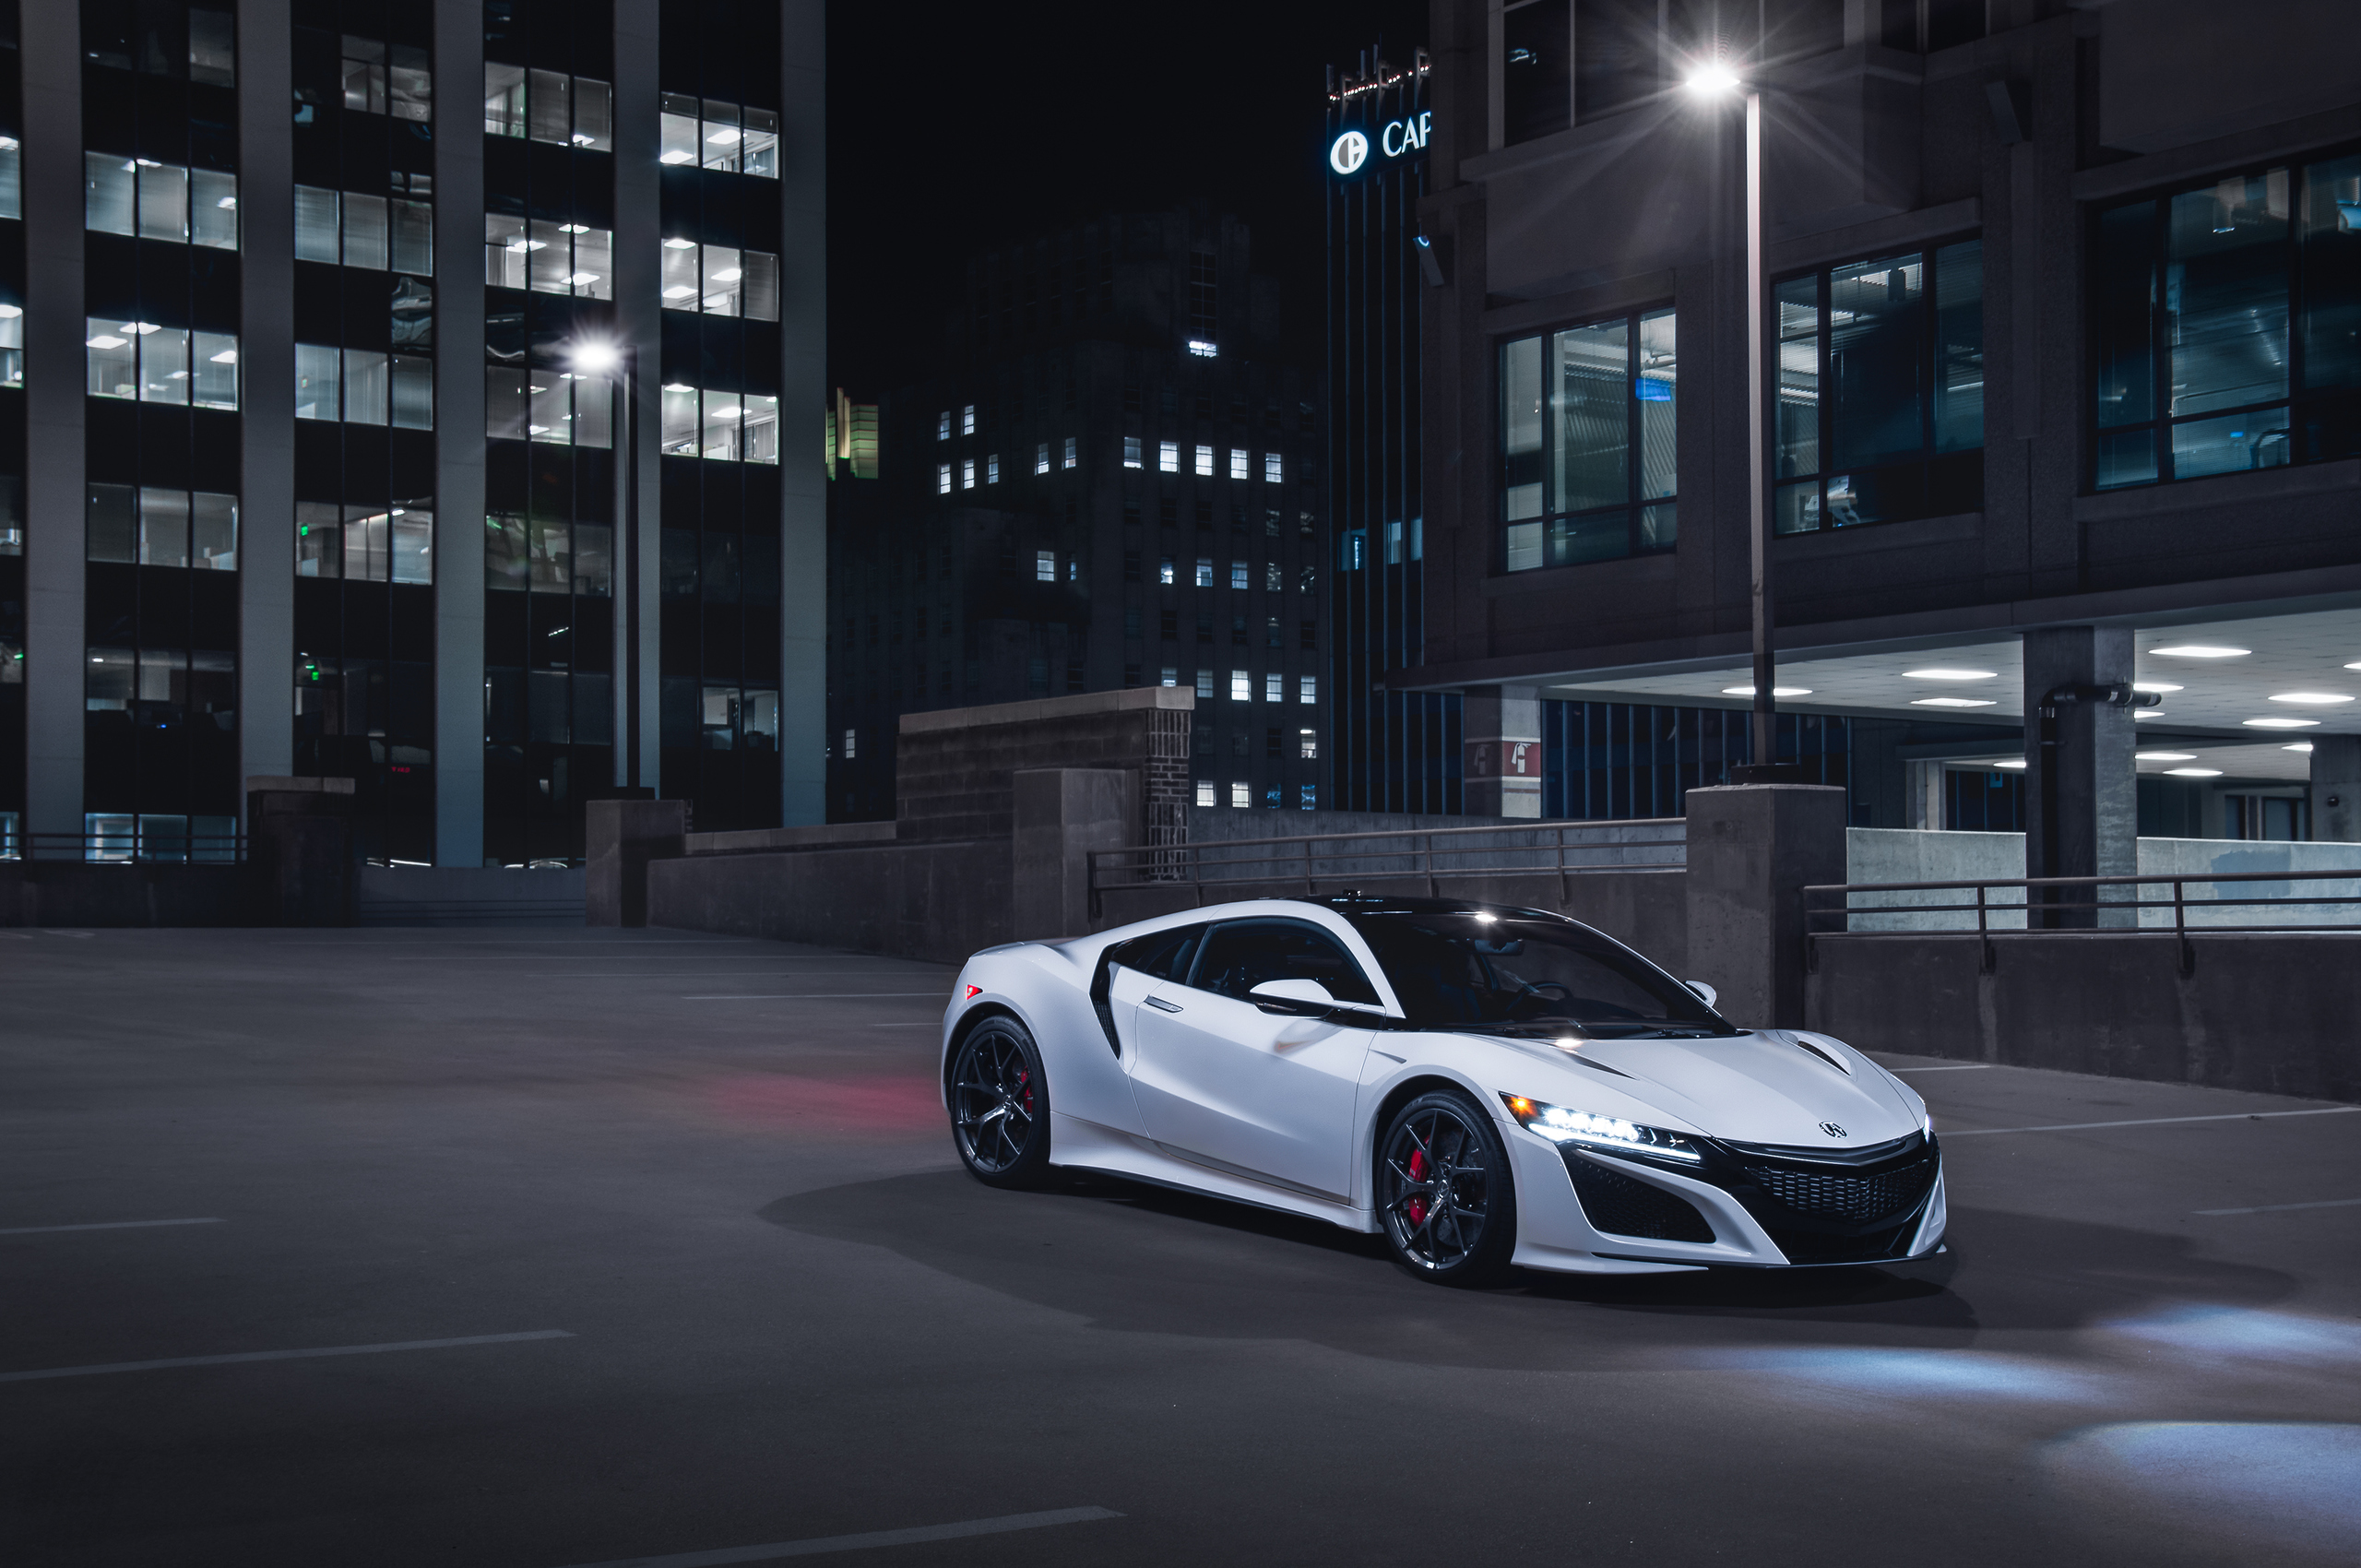 acura-nsx-2019-front-view-4k-n6.jpg